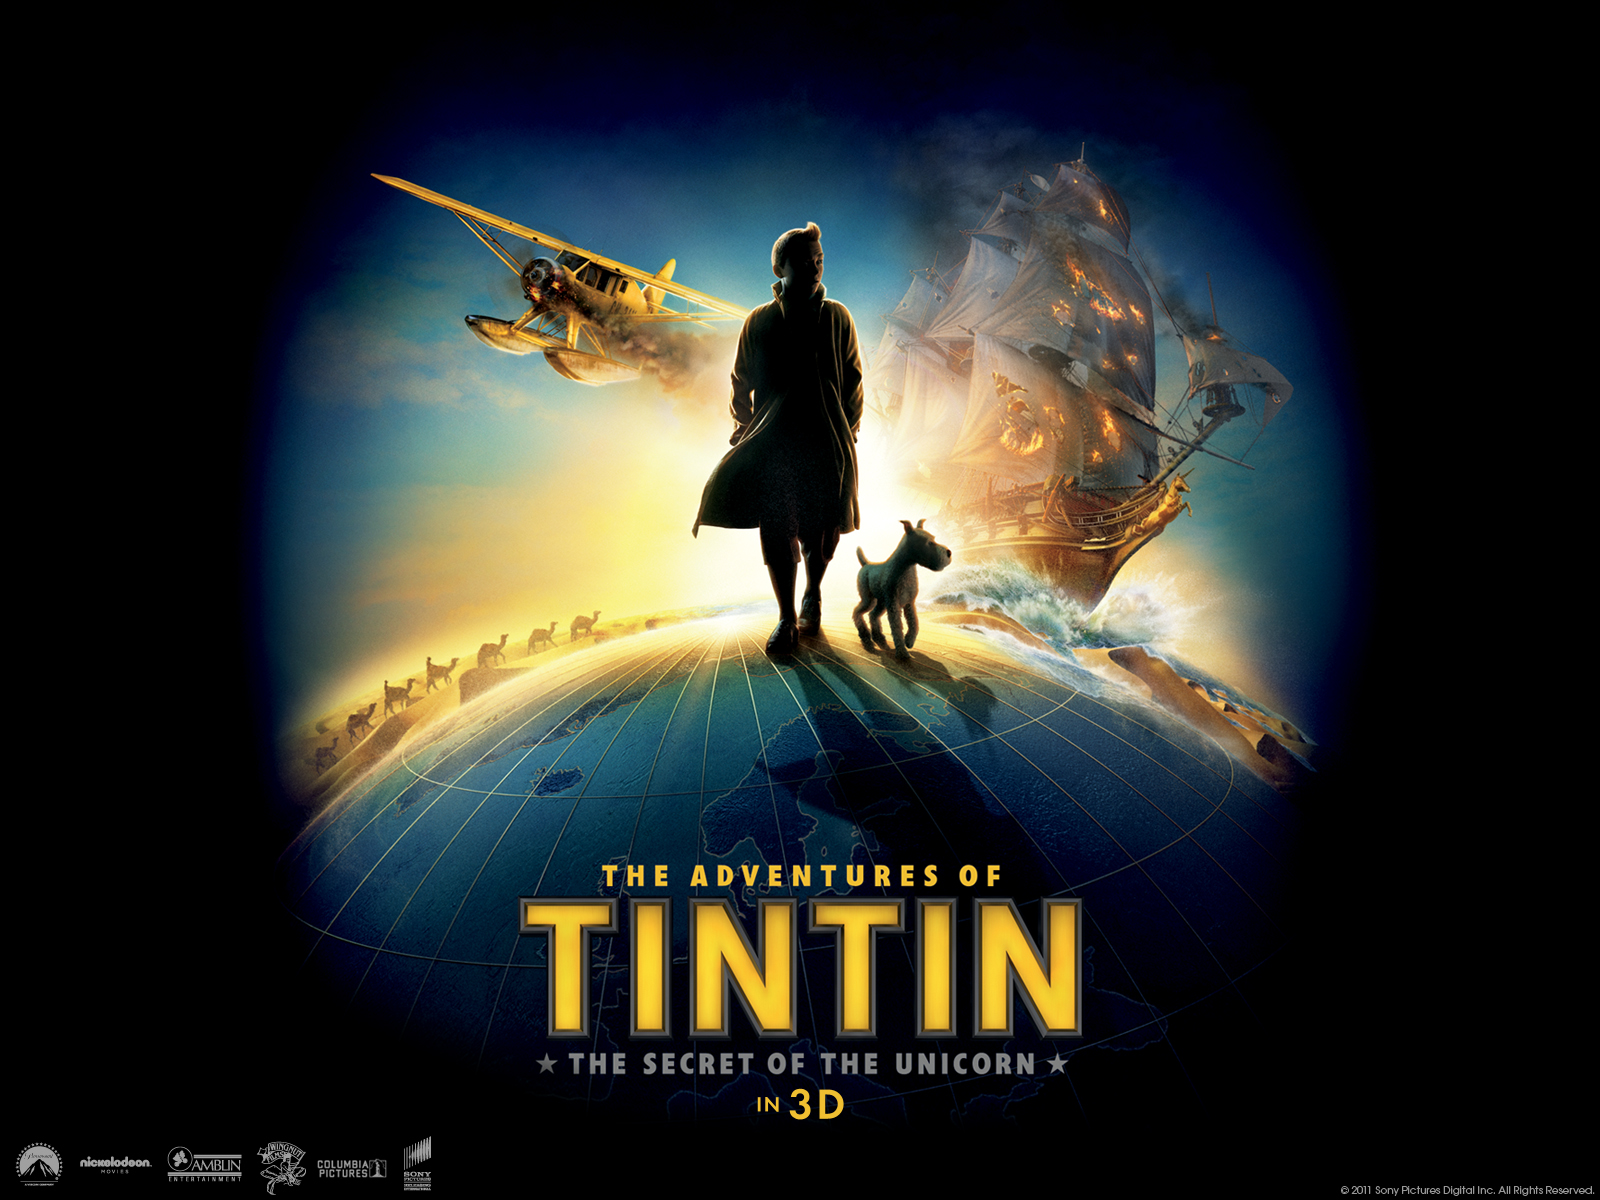 The Adventures Of Tintin Posters Hd Wallpapers Hd